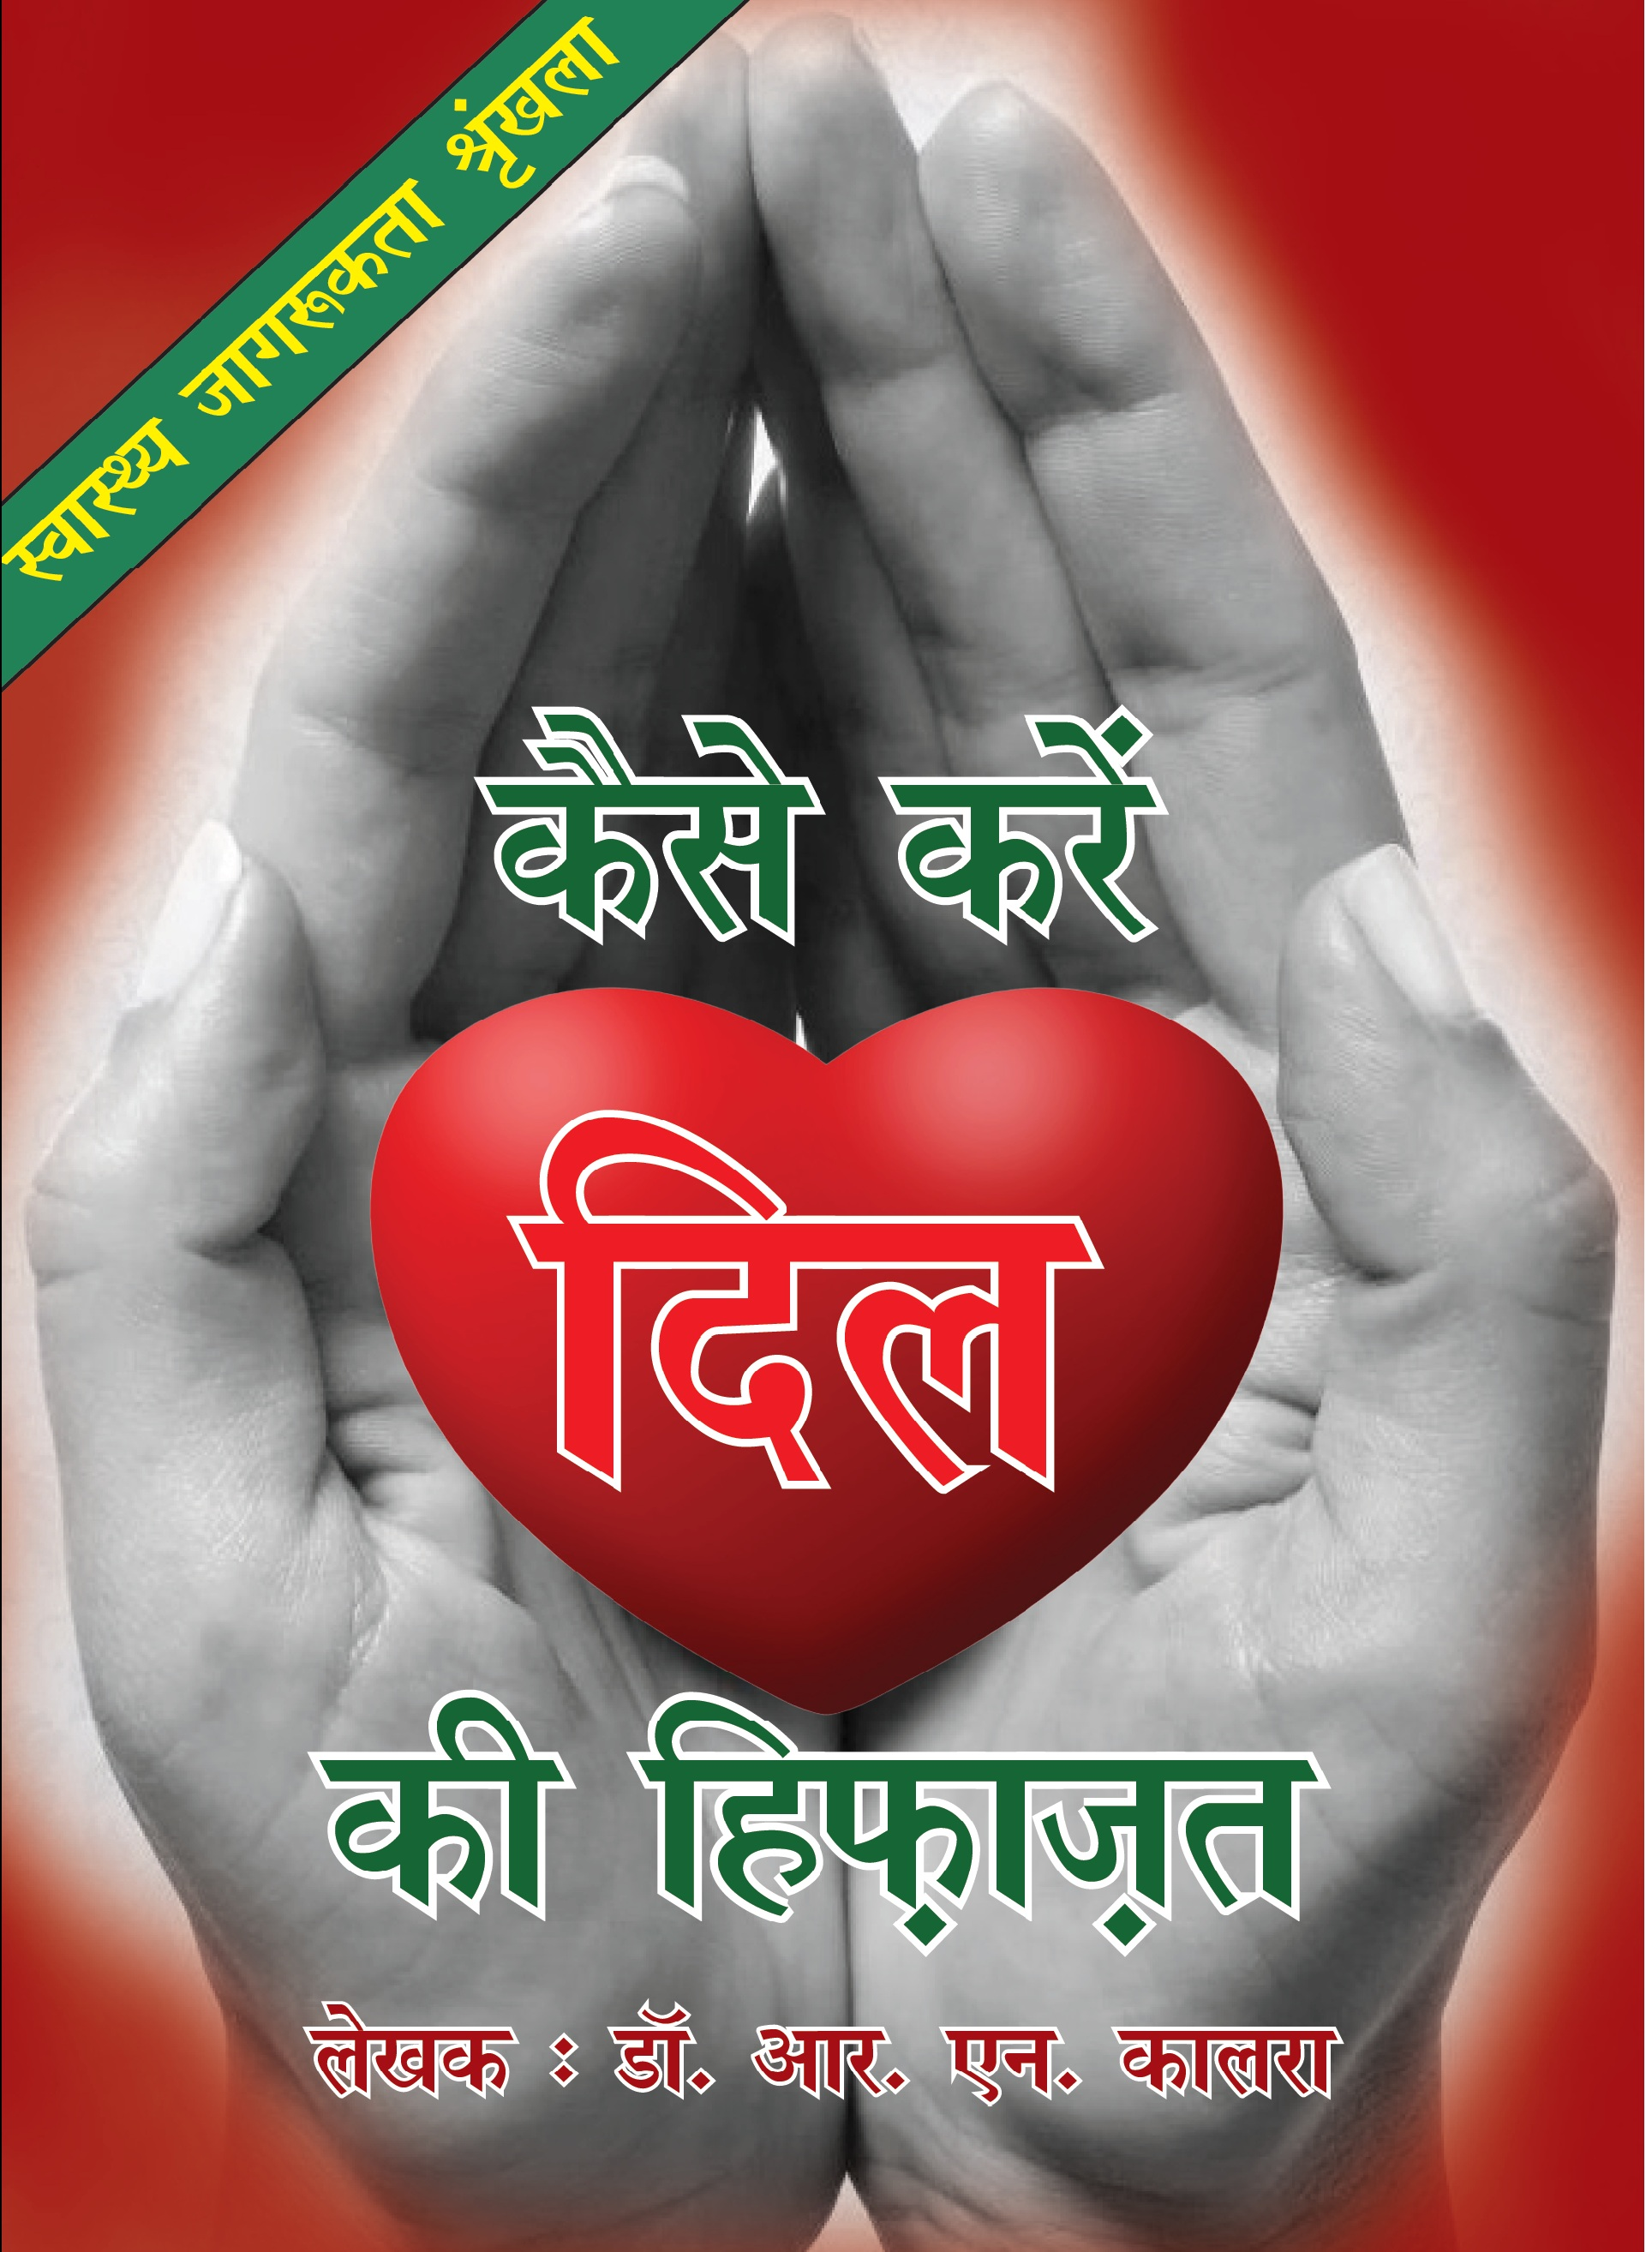 Book on Heart Care by Dr. R. N. Kalra